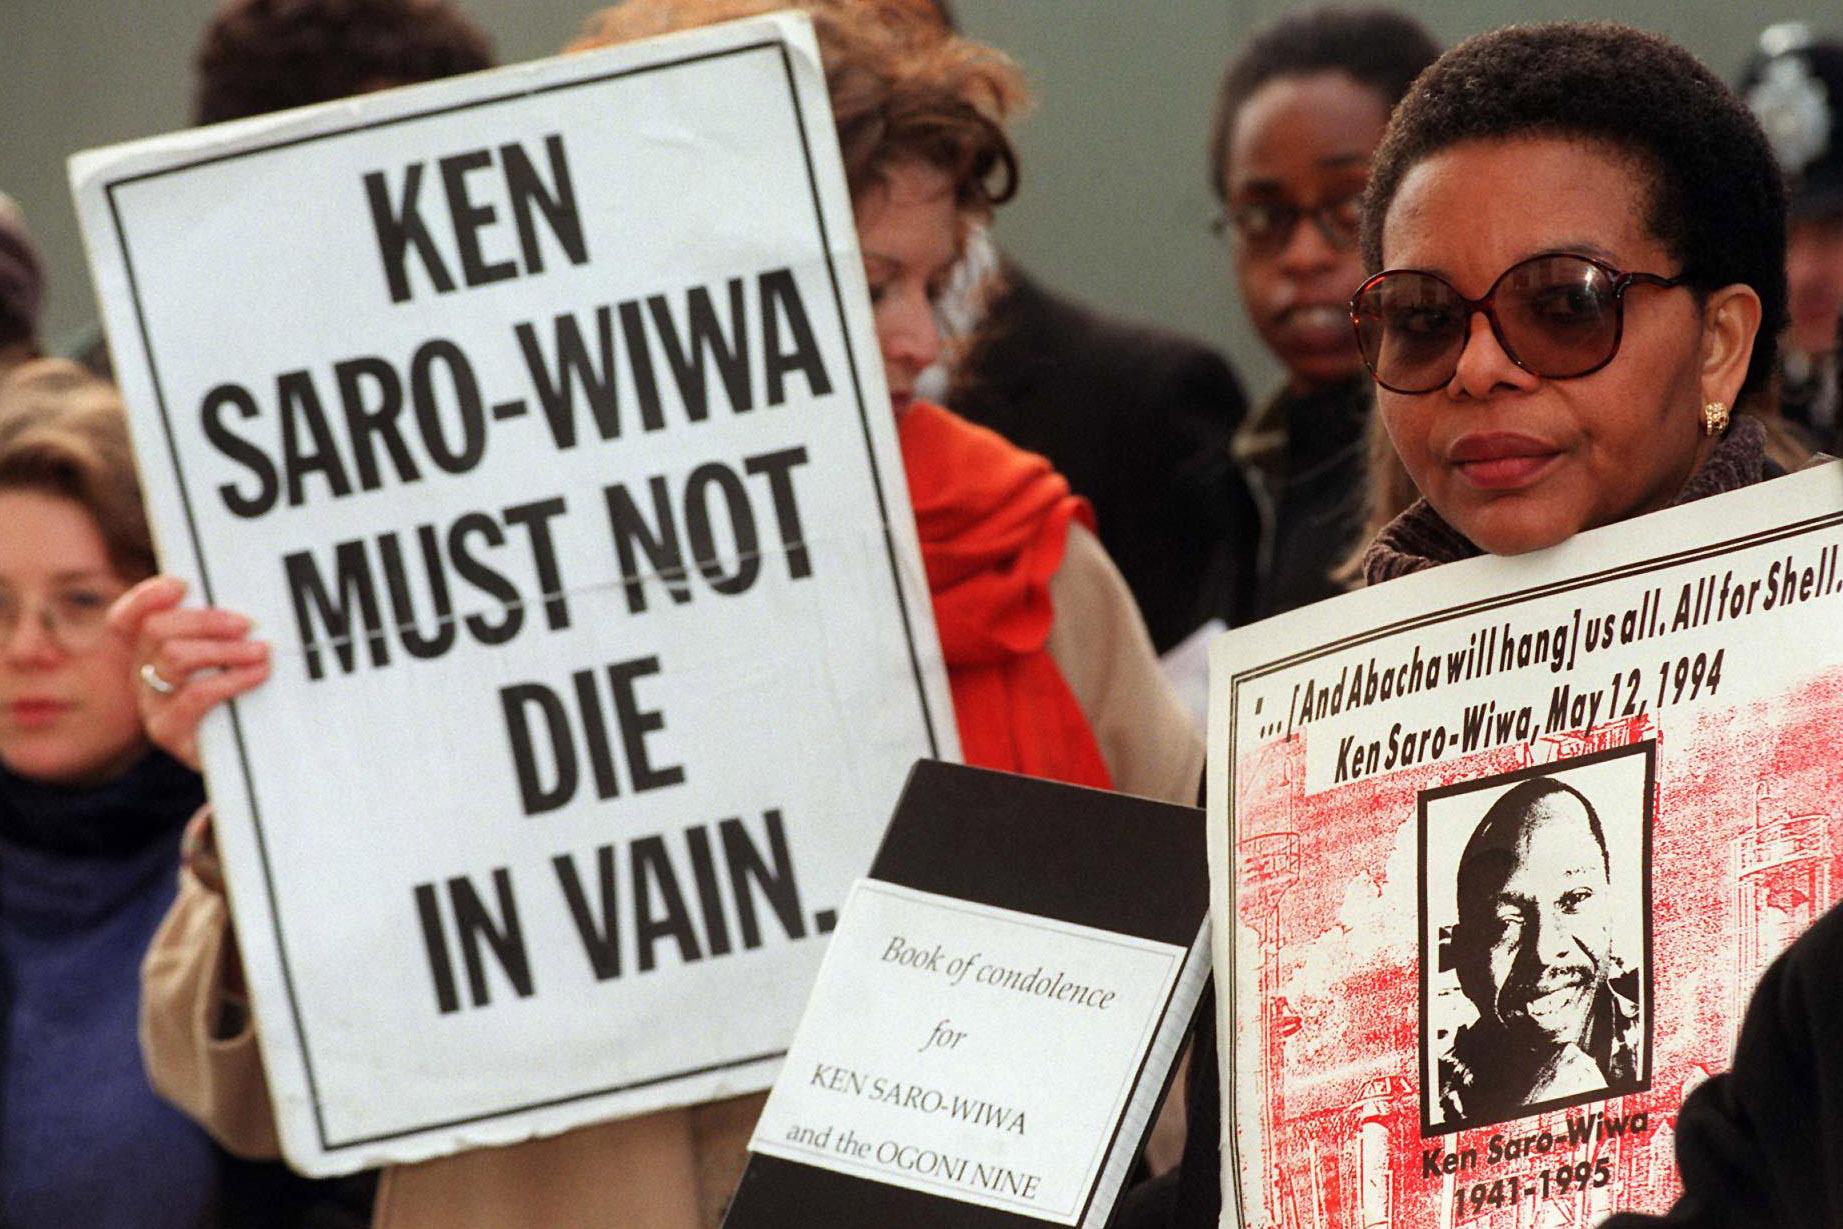 10 November 1995: Environmental rights activist and writer Ken Saro-Wiwa was executed in Nigeria, despite protests from the international community. (Photograph by Stefan Rousseau PA Images/PA Images via Getty Images)